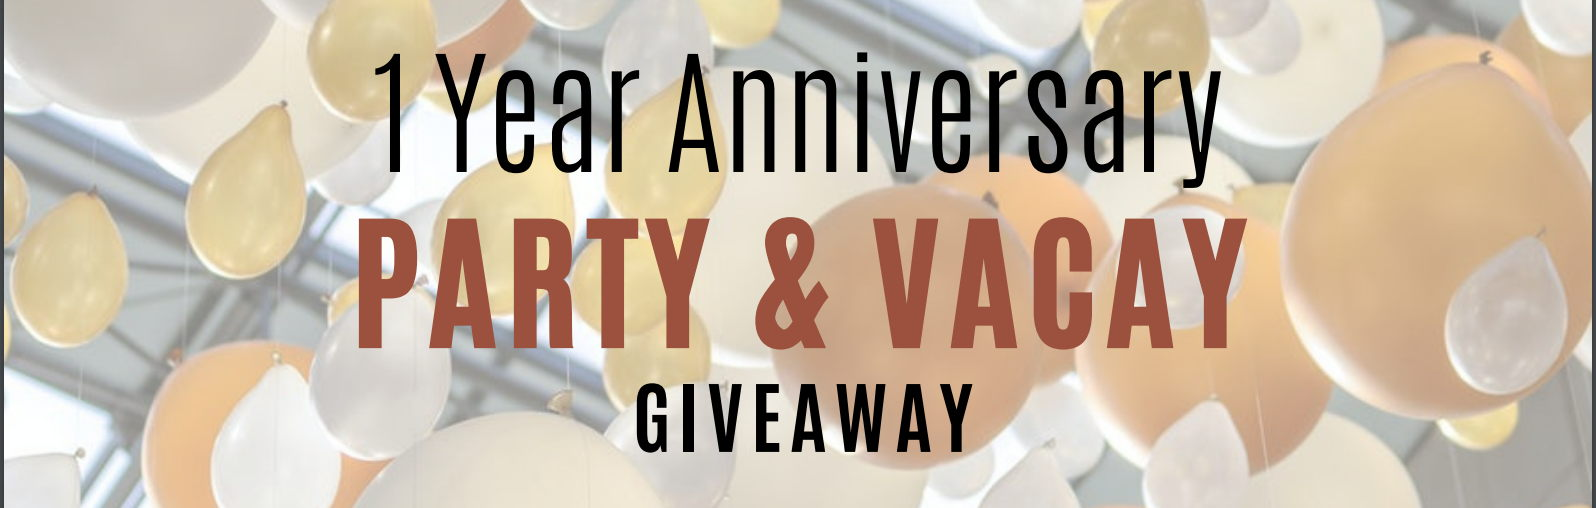 Giveaway! 1 Year Anniversary Party & Vacay